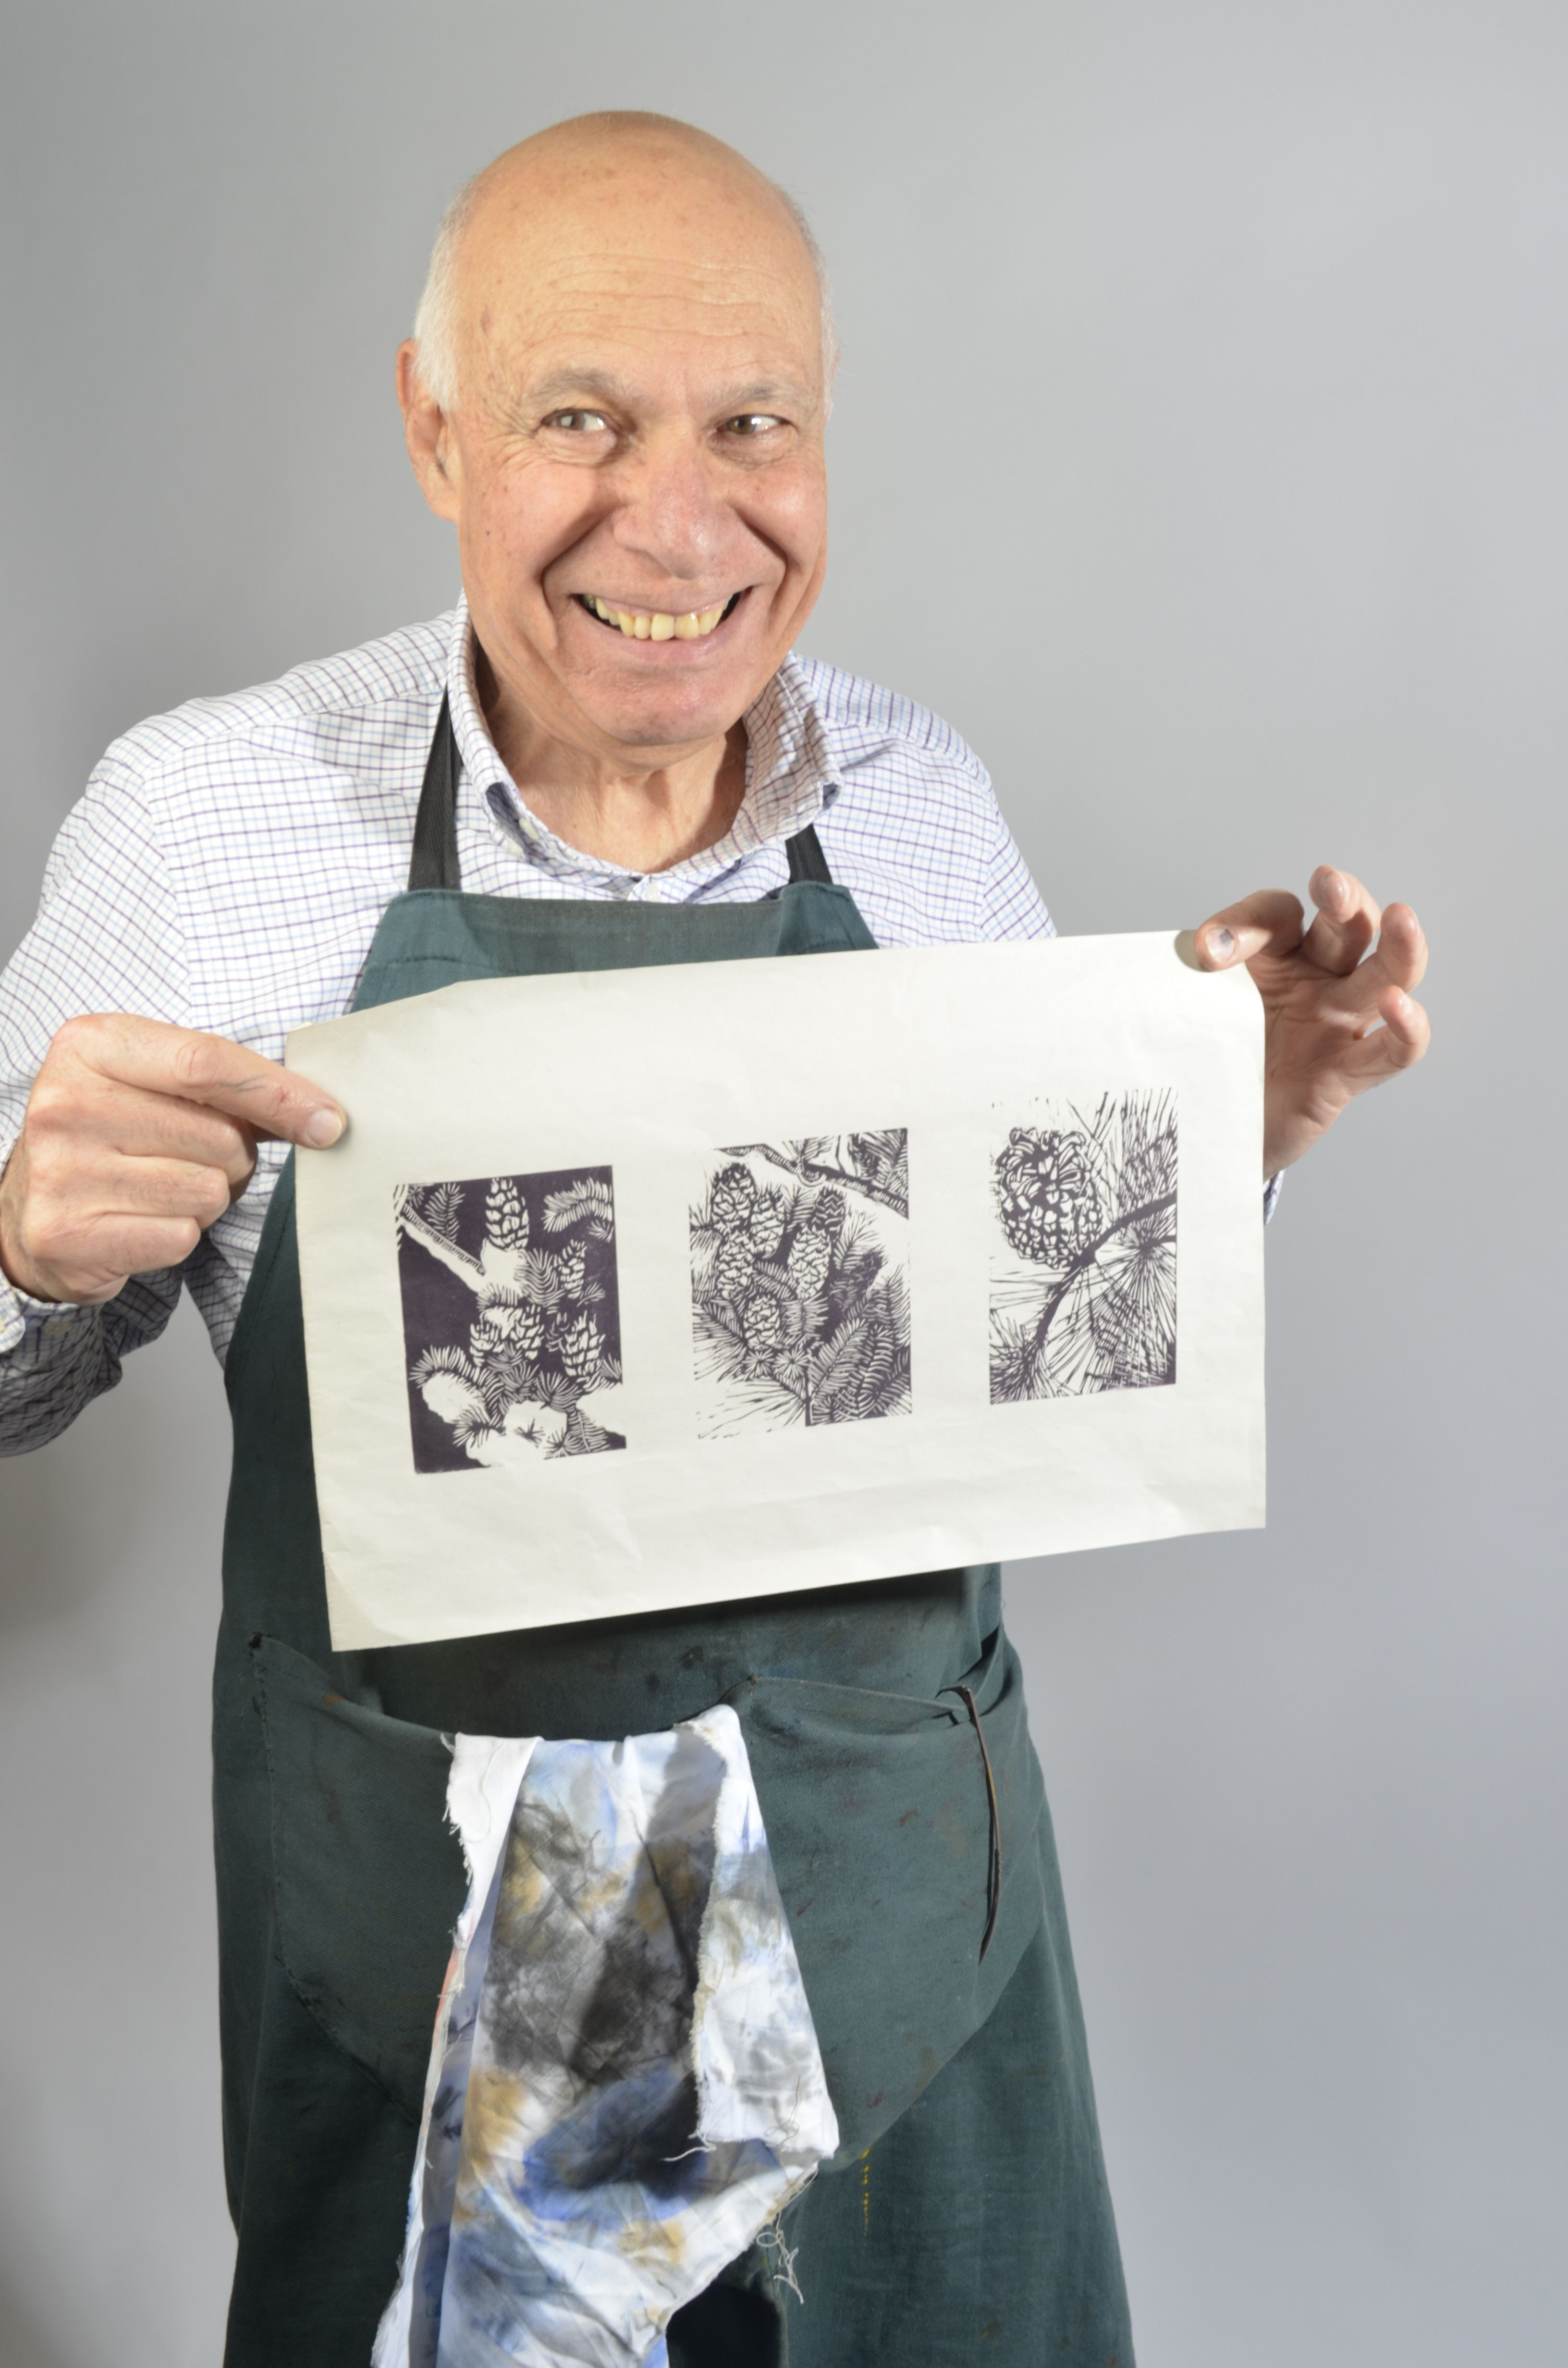 David, a printmaker at Richmond Community College, photographed by Emma le Blanc.